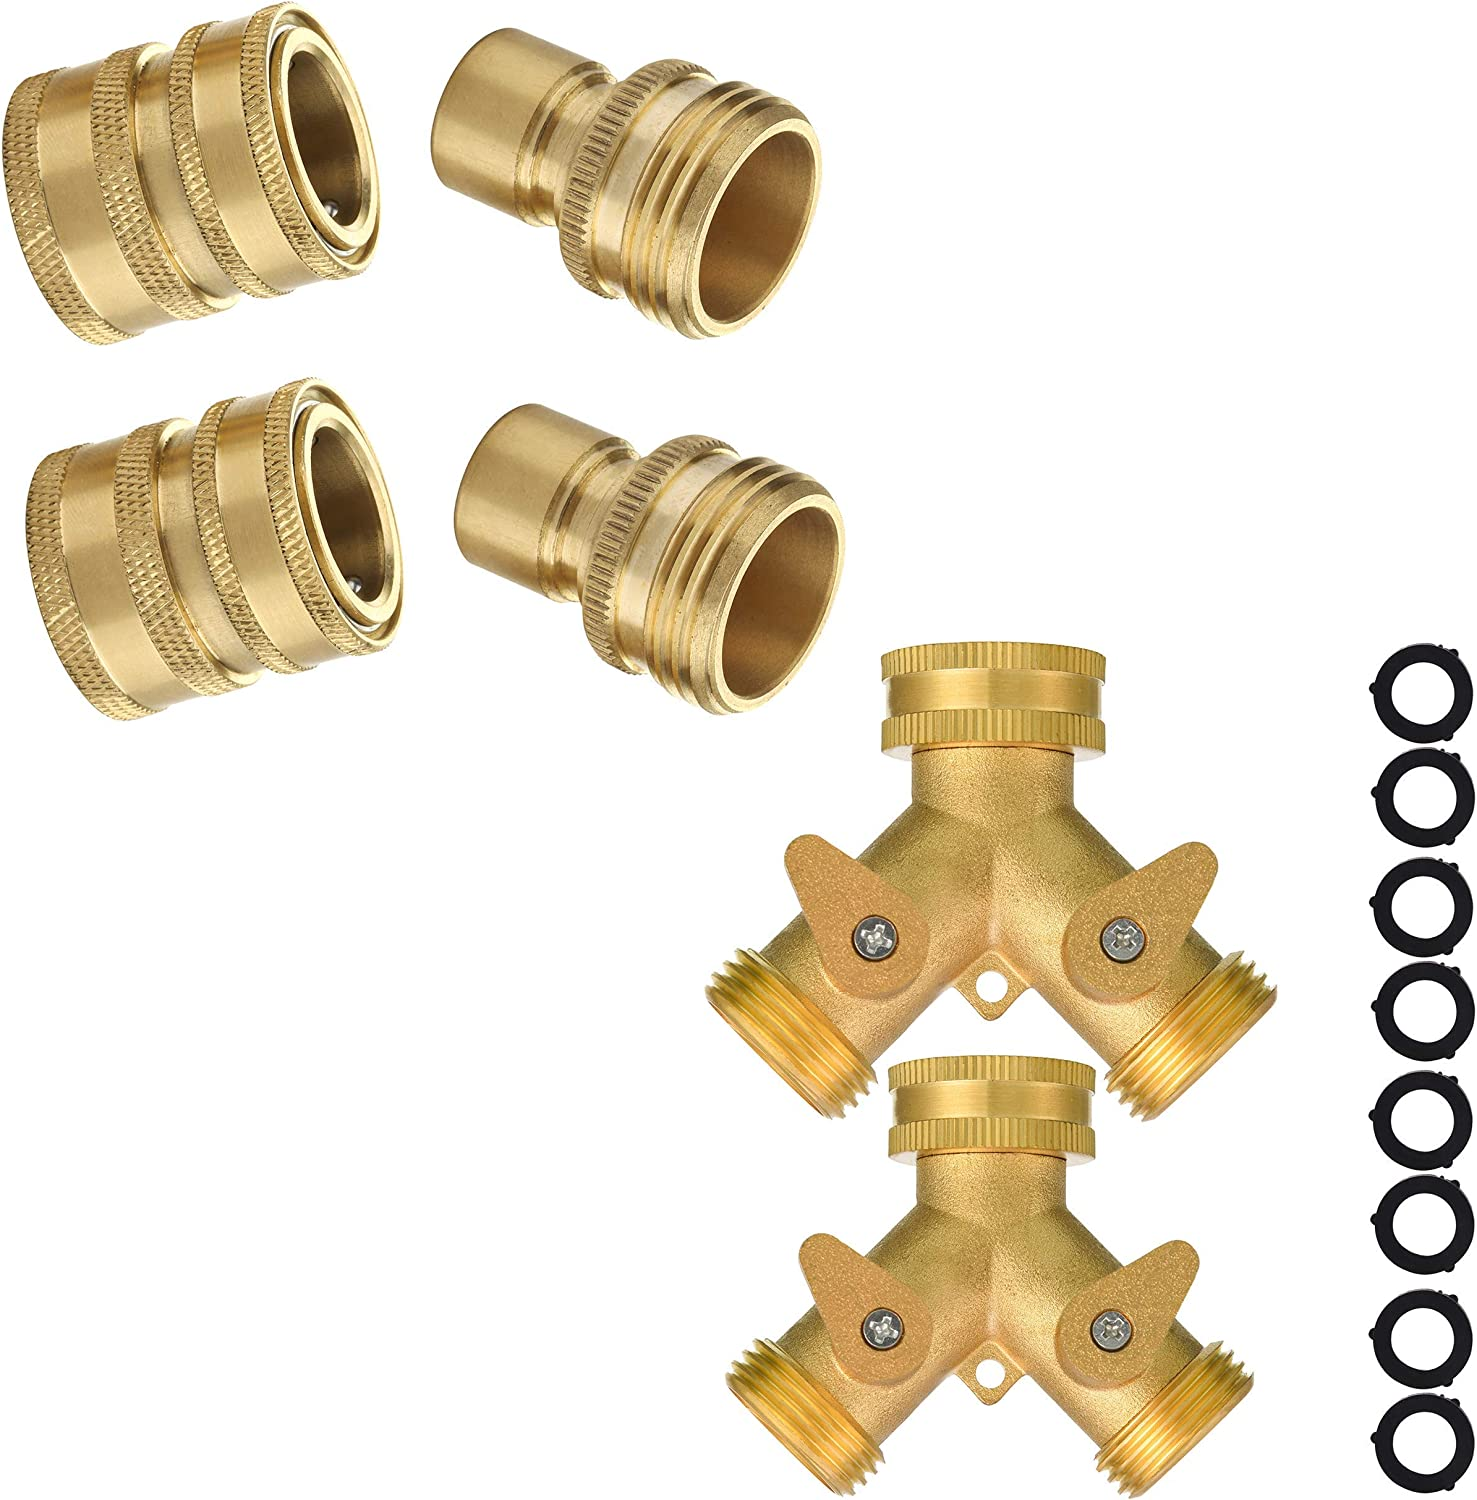 M MINGLE Garden Hose Quick Connect Fittings, Garden Hose Splitter 2 Way Heavy Duty, with Extra 8 Washers